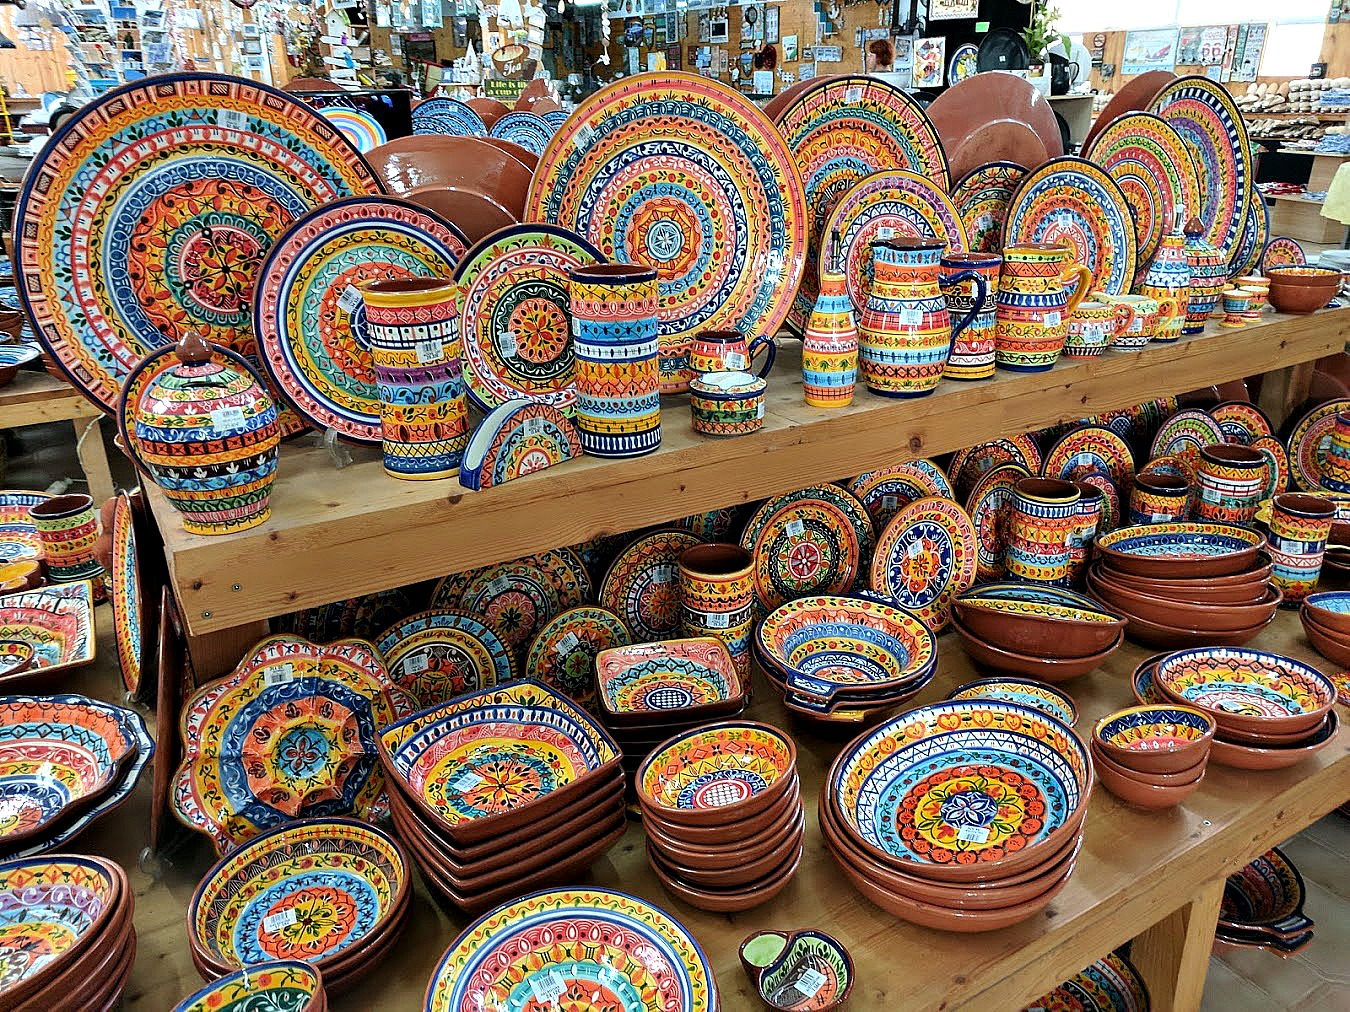 11 Reasons to Visit Portugal. Because of its beauty and price, Portuguese pottery will make you smile.